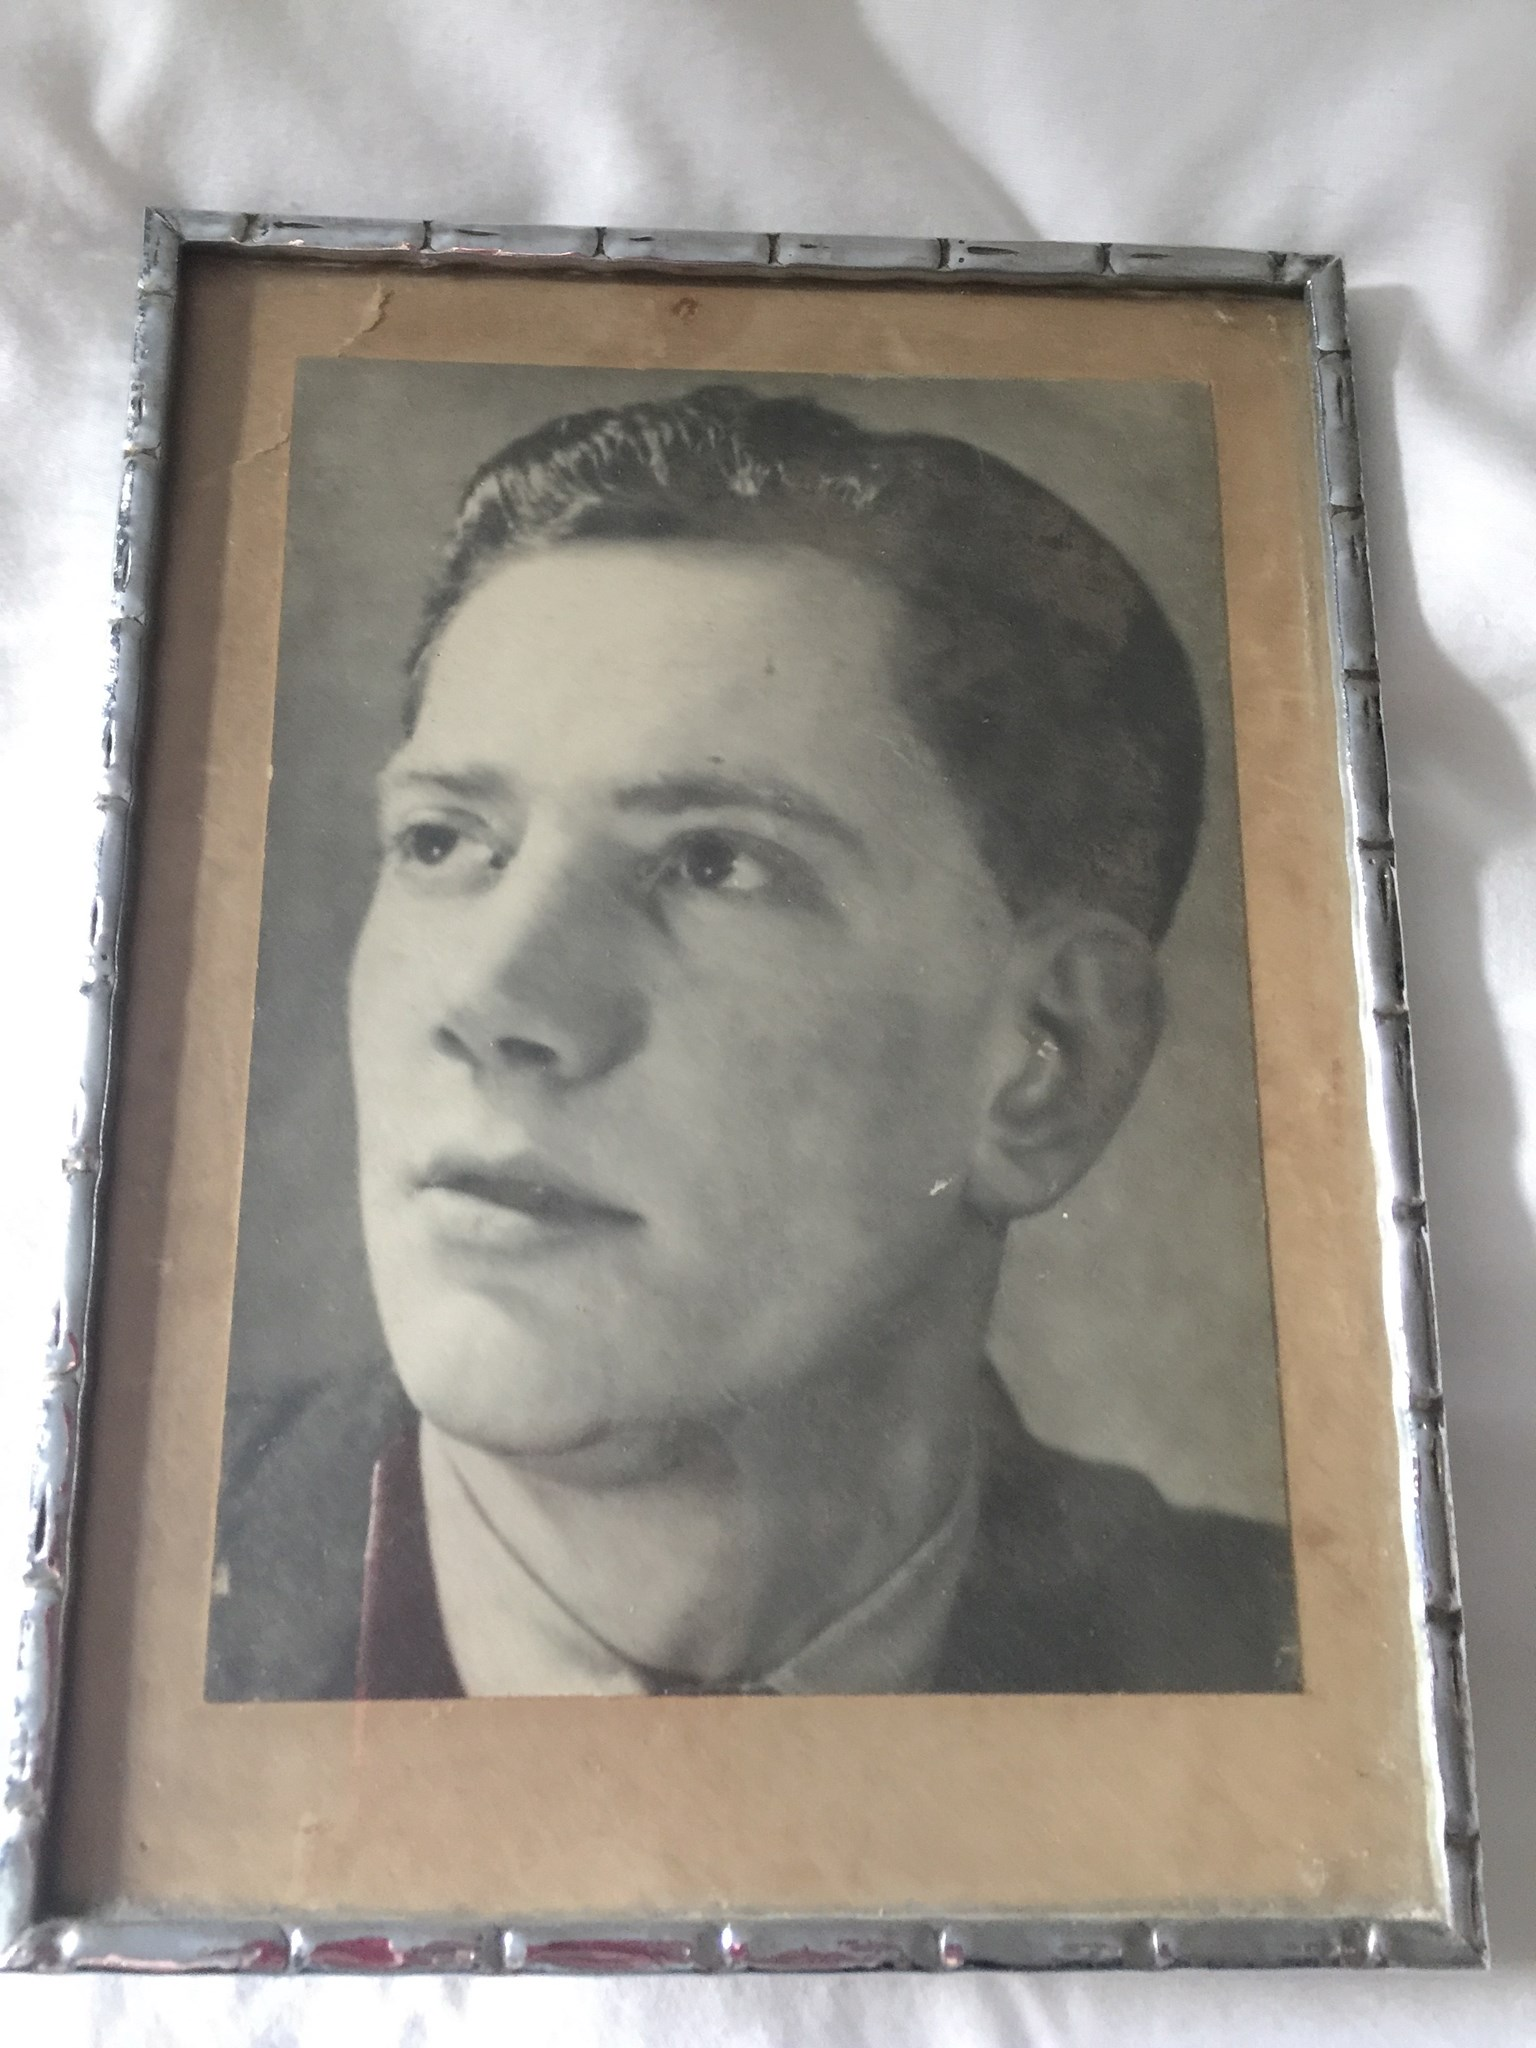 Photo from the RAF. Grandad was aged 21.